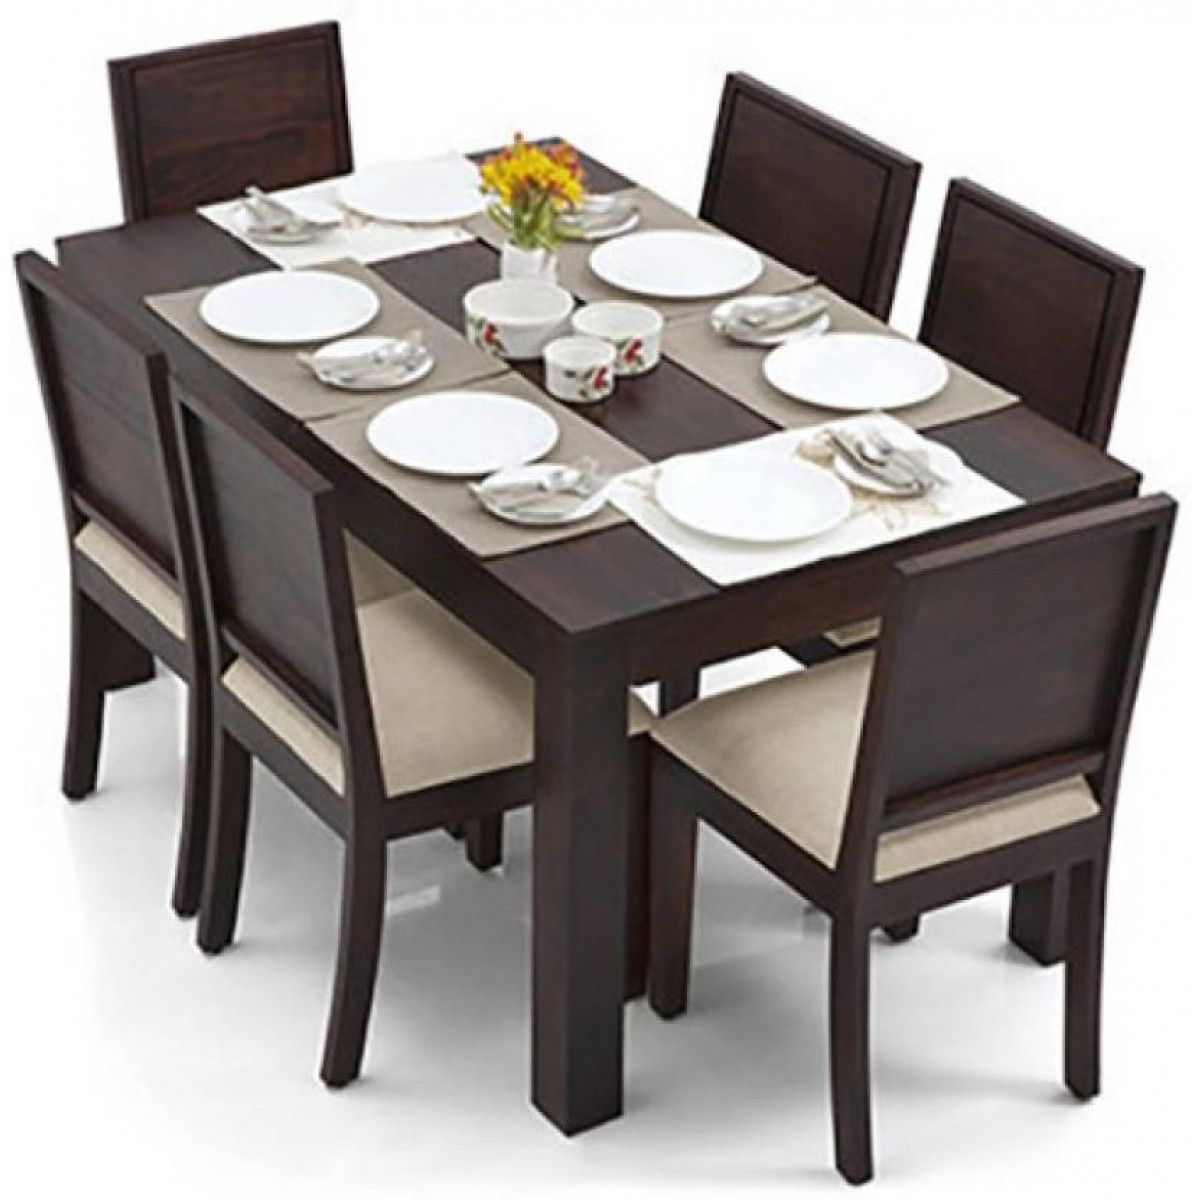 Oribi Bench Wood Dining Table Set Finish Color Teak 6 Seater